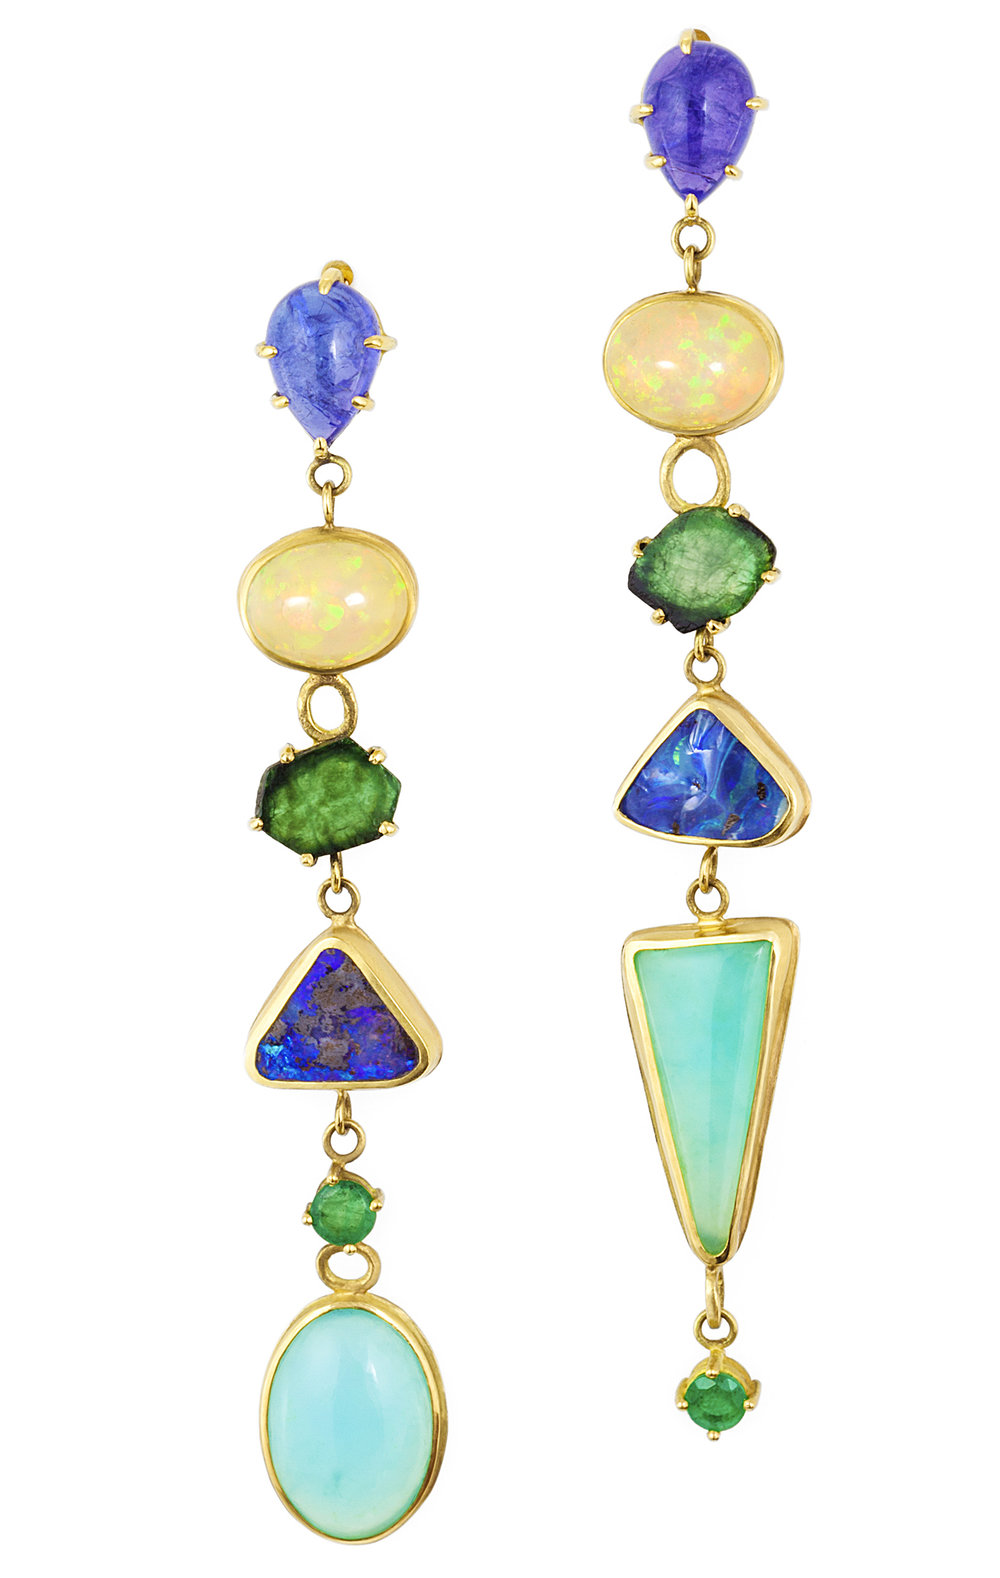 18k yellow gold and opal shoulder duster earrings